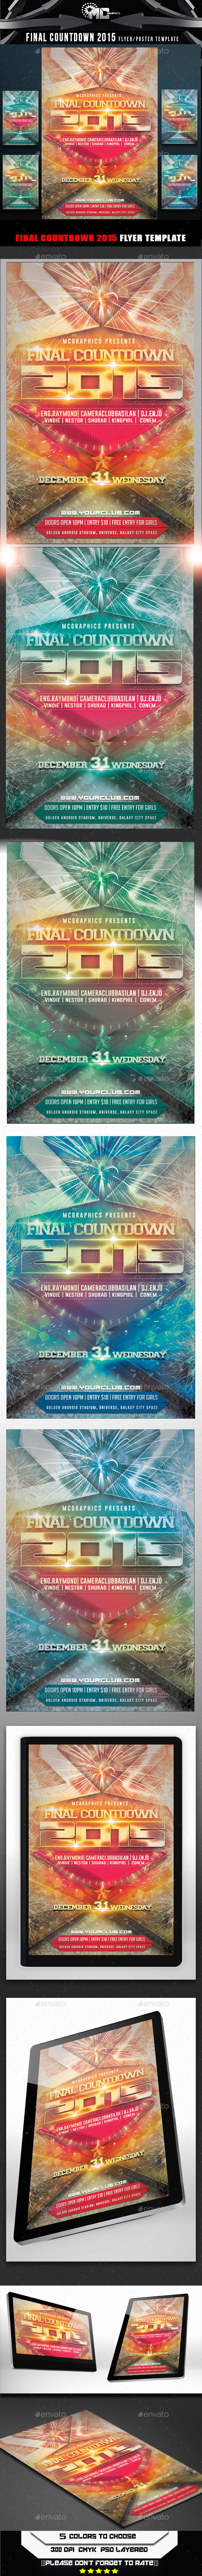 Final Countdown 2015 Flyer Template - Flyers Print Templates